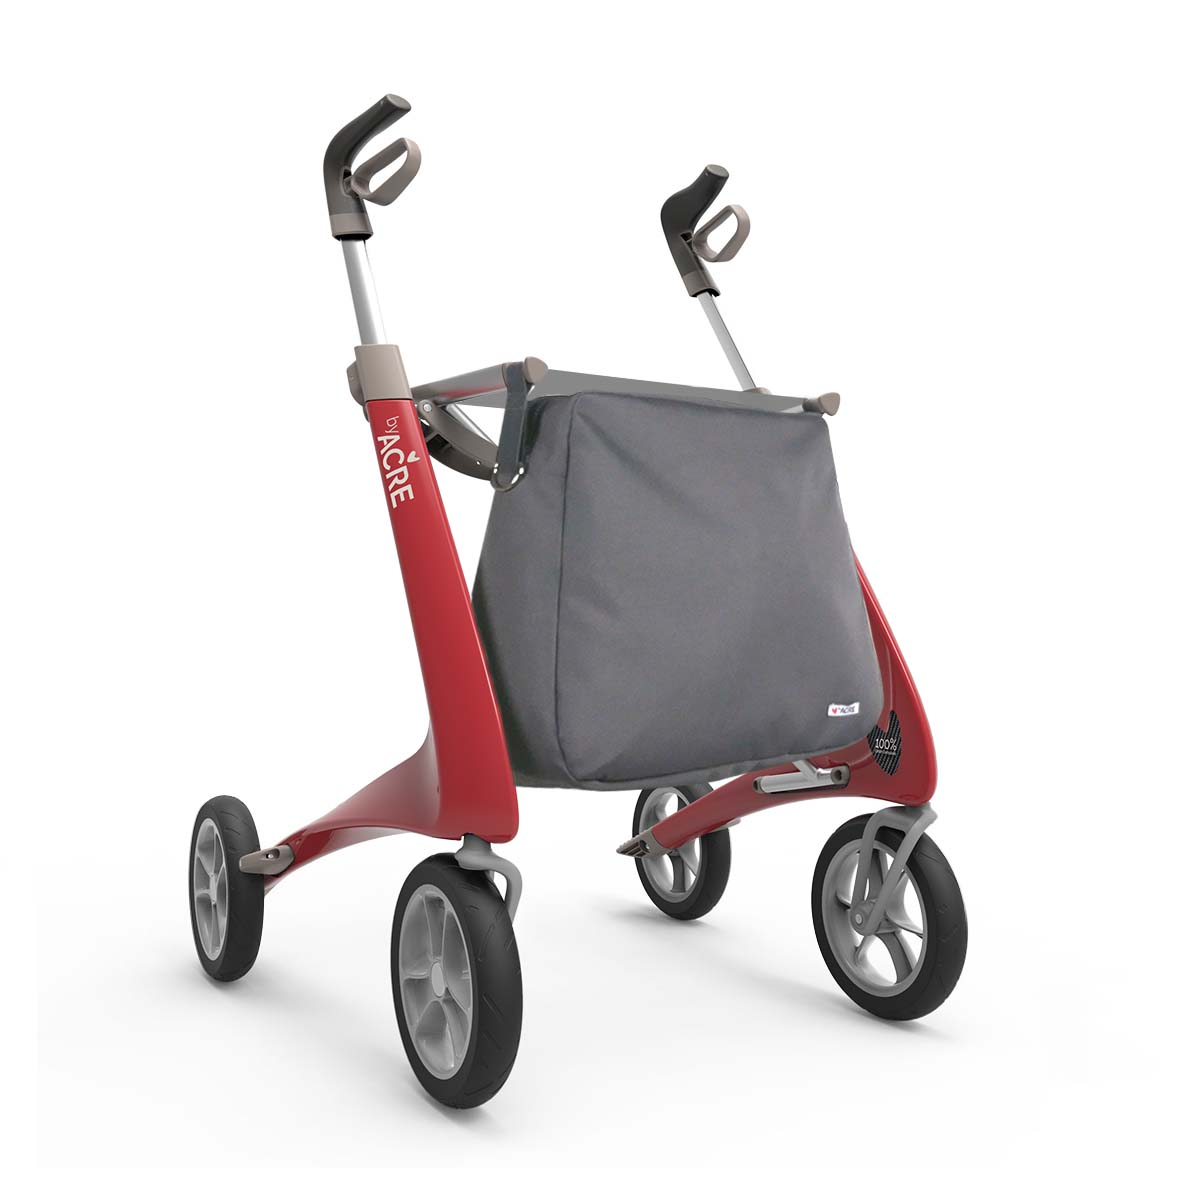 Weekend bag on the Red Carbon Ultralight Rollator byACRE - seen in perspective